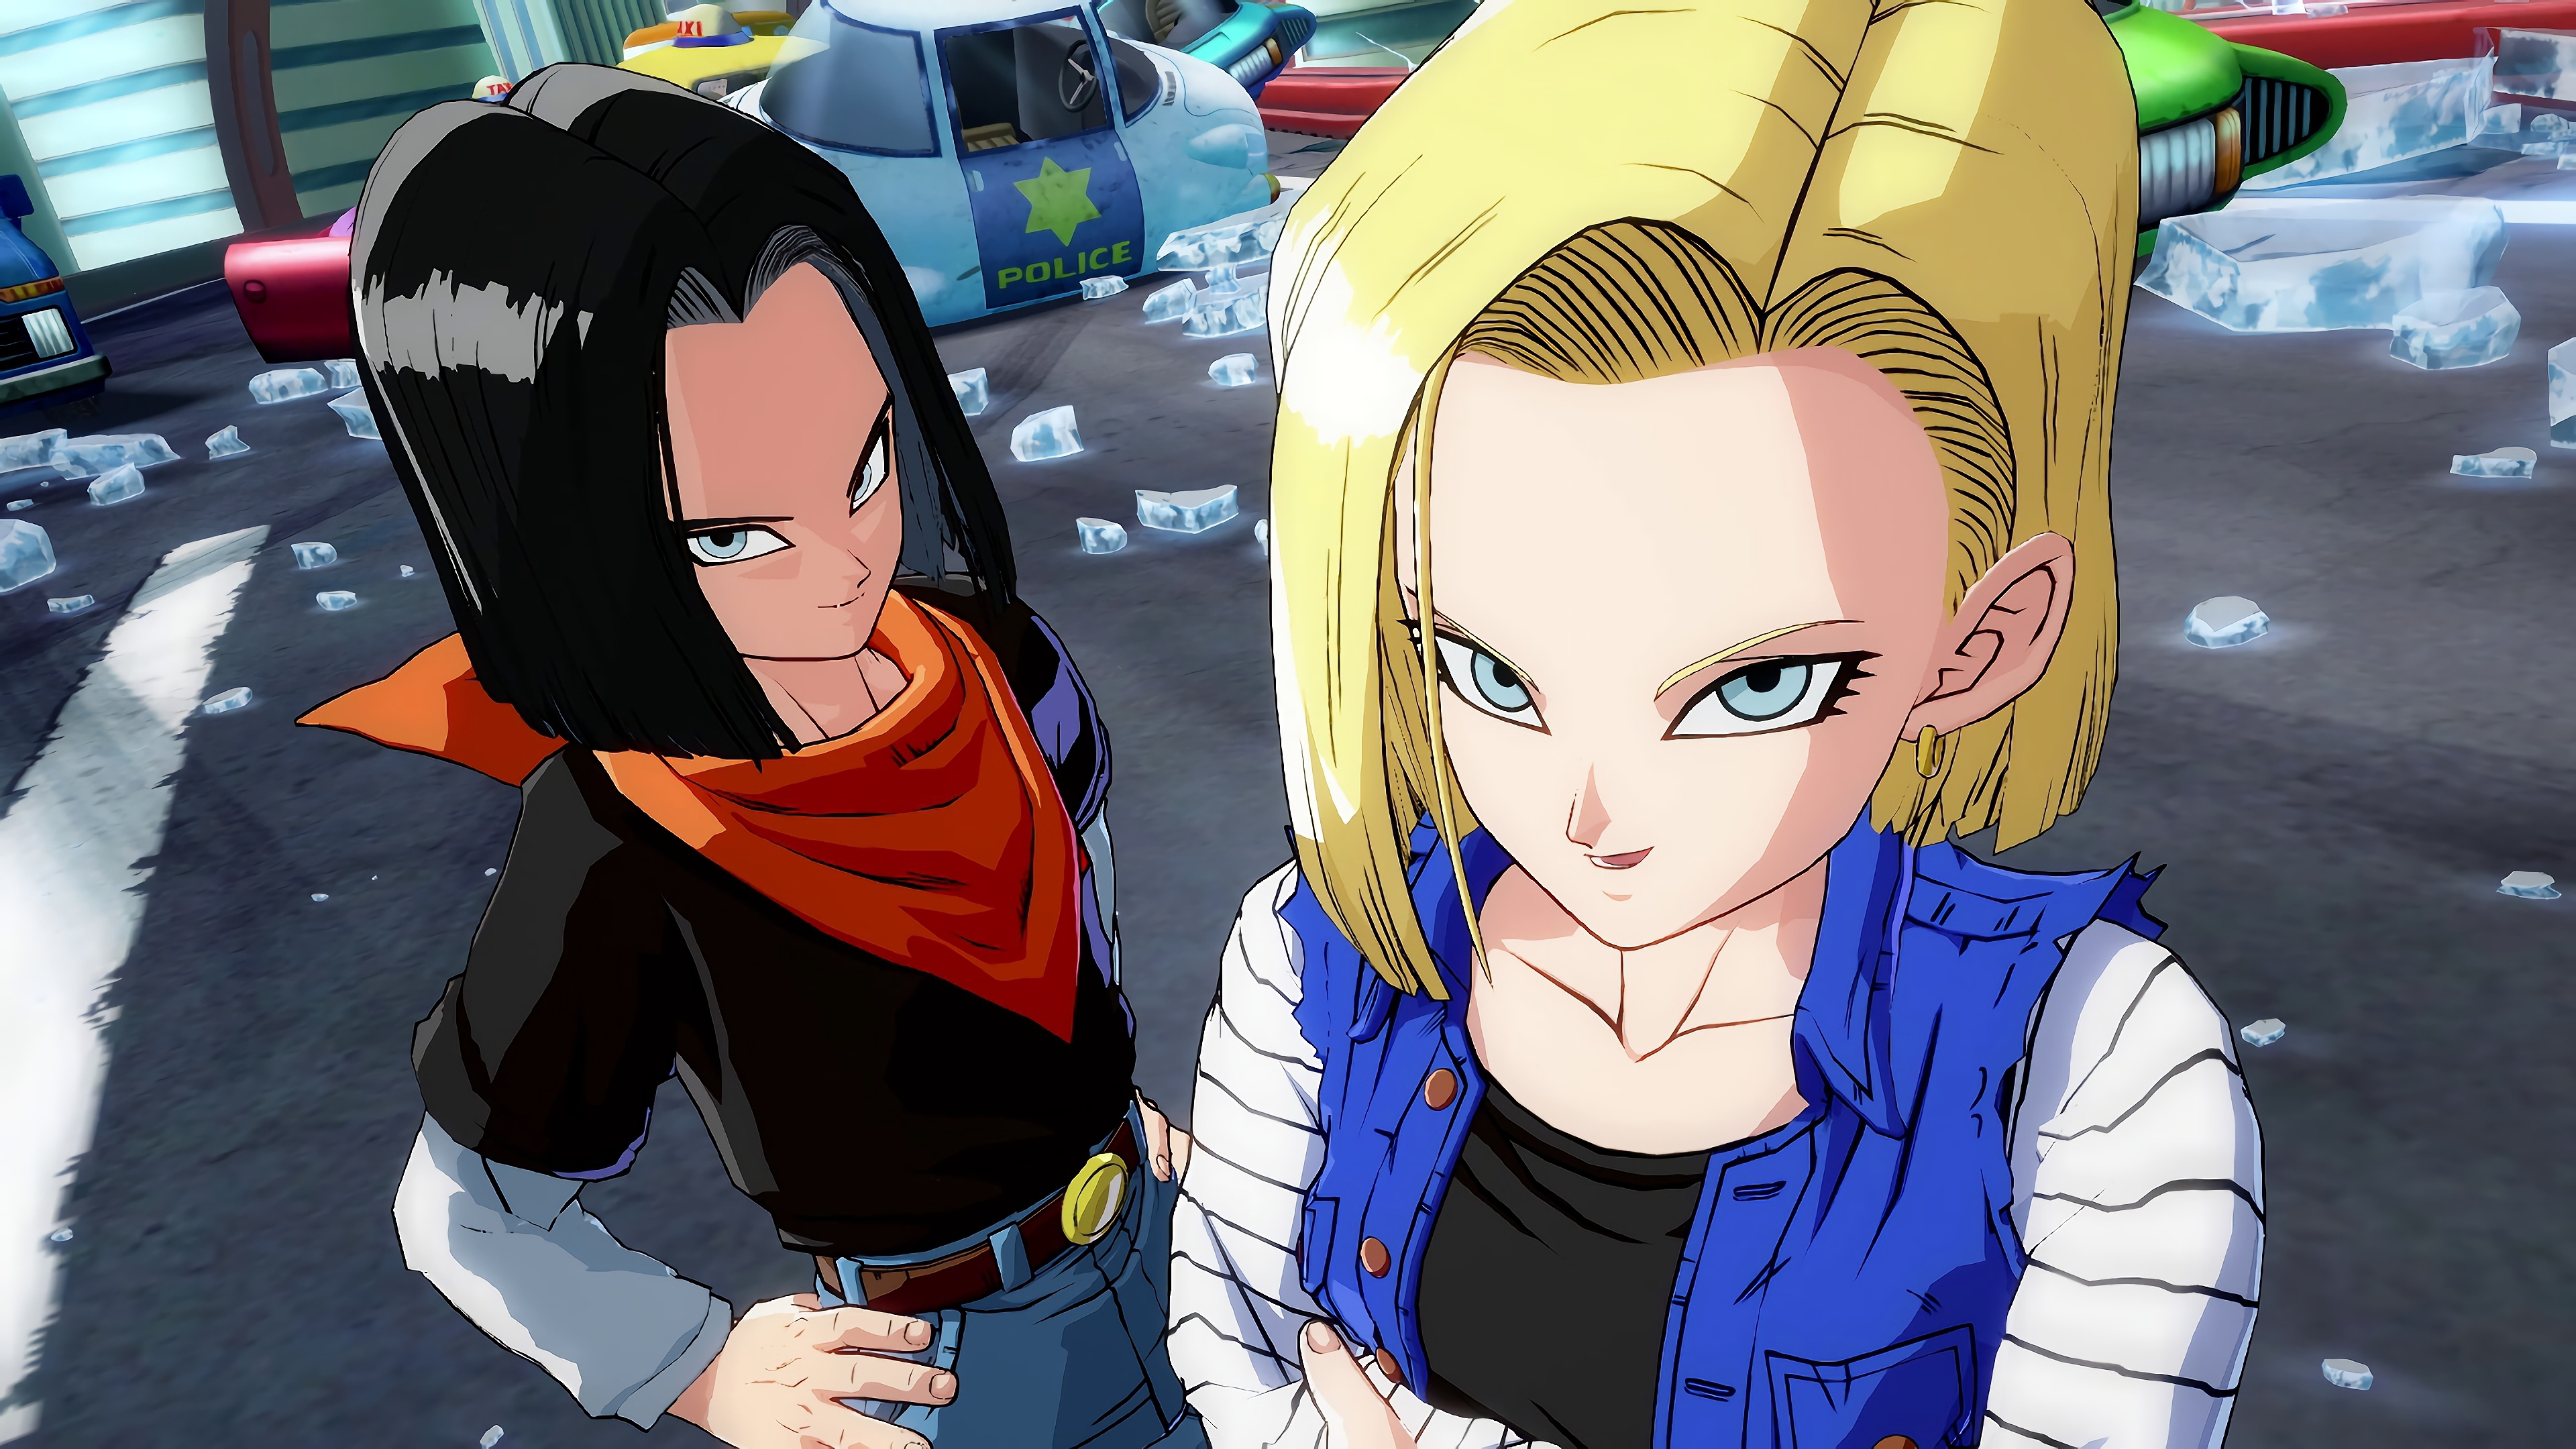 Android 17 Dragon Ball Fighterz 2461538 Hd Wallpaper